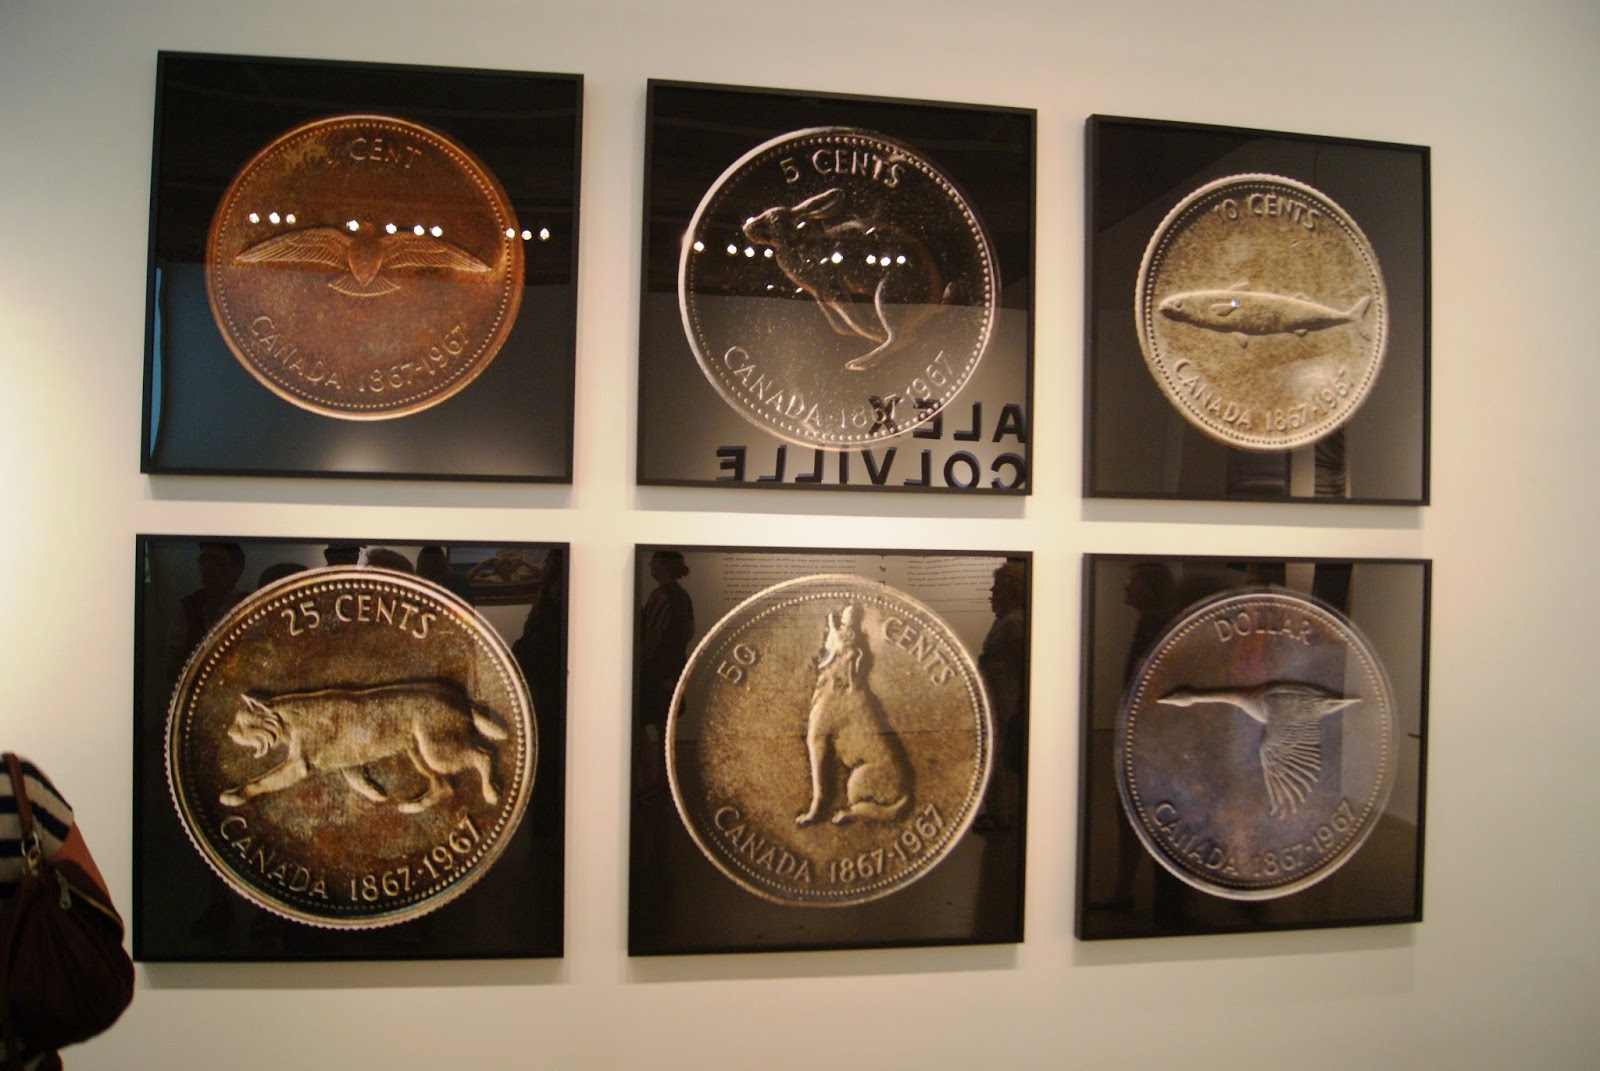 Alex Colville Exhibit at Art Gallery of Ontario in Toronto, Centennial Coins, 2014, paintings, art, artmatters, culture,ontario, Canadian Artist, Painter, Canada, William Eakin